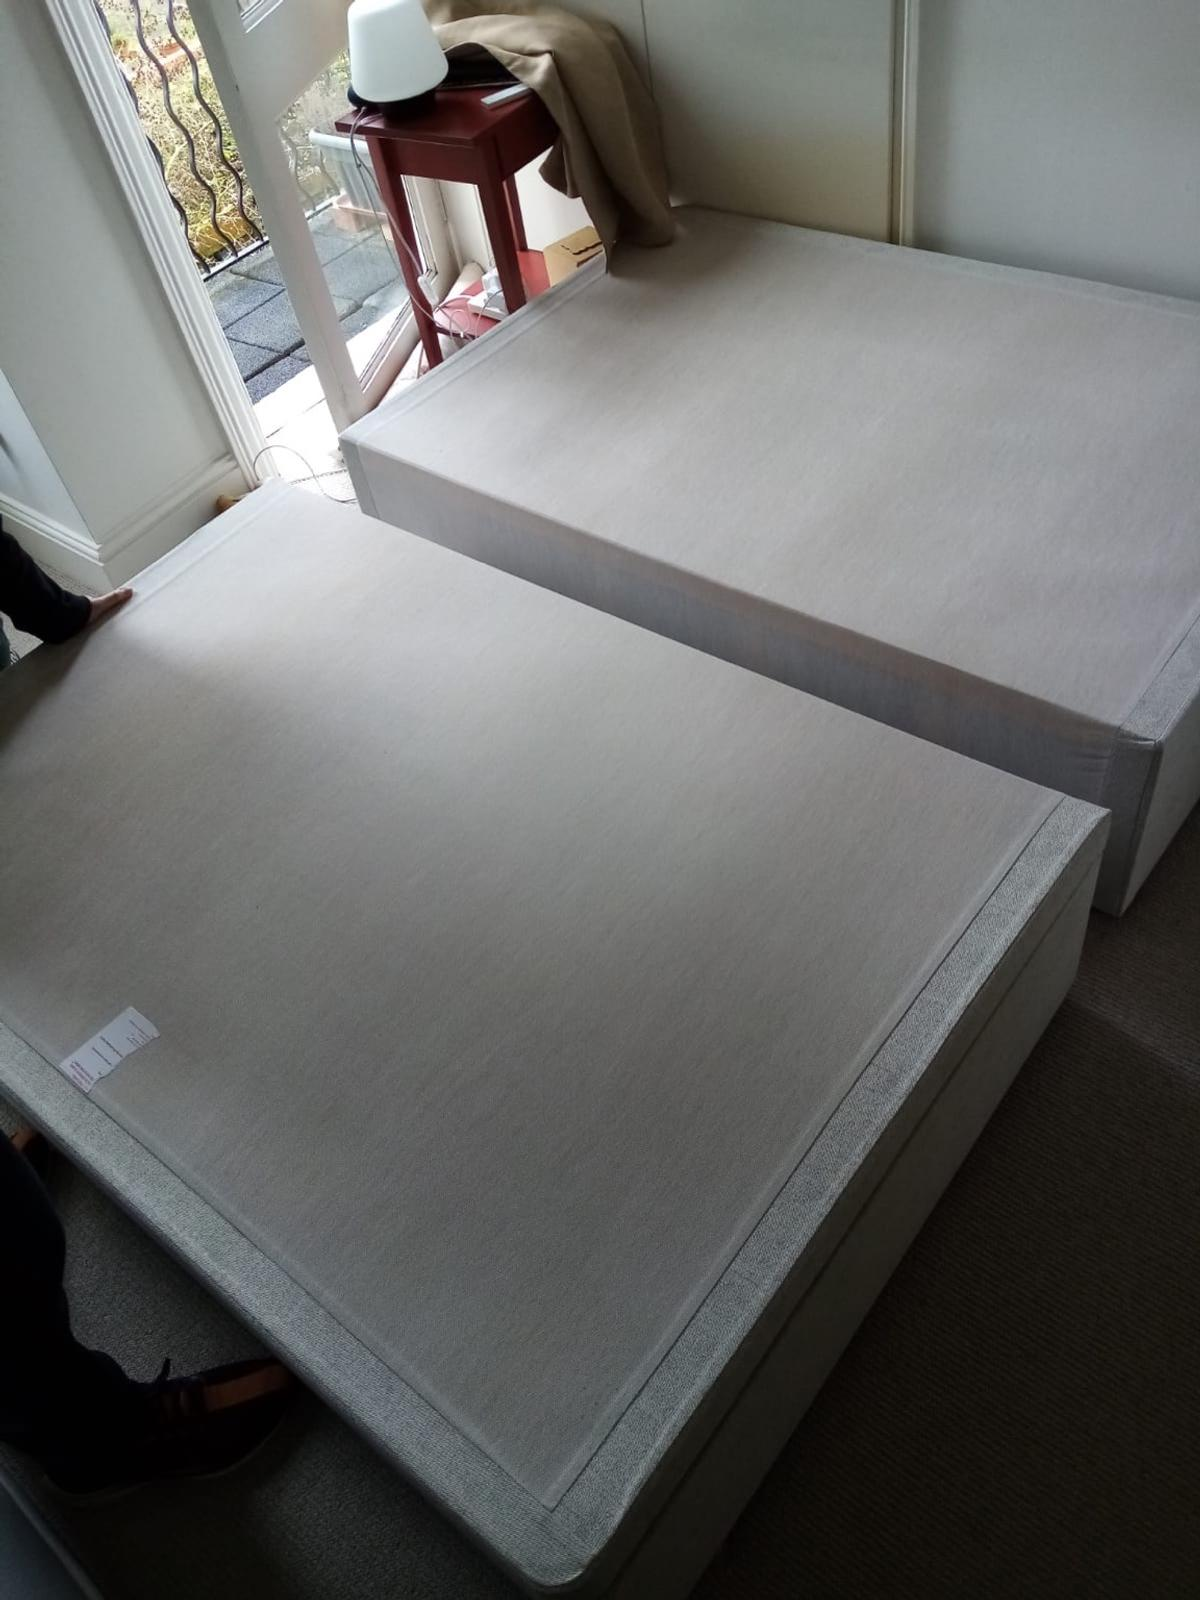 King size duvan bed ,mattress and headboard not included with delivery for extra 10 pounds within MK